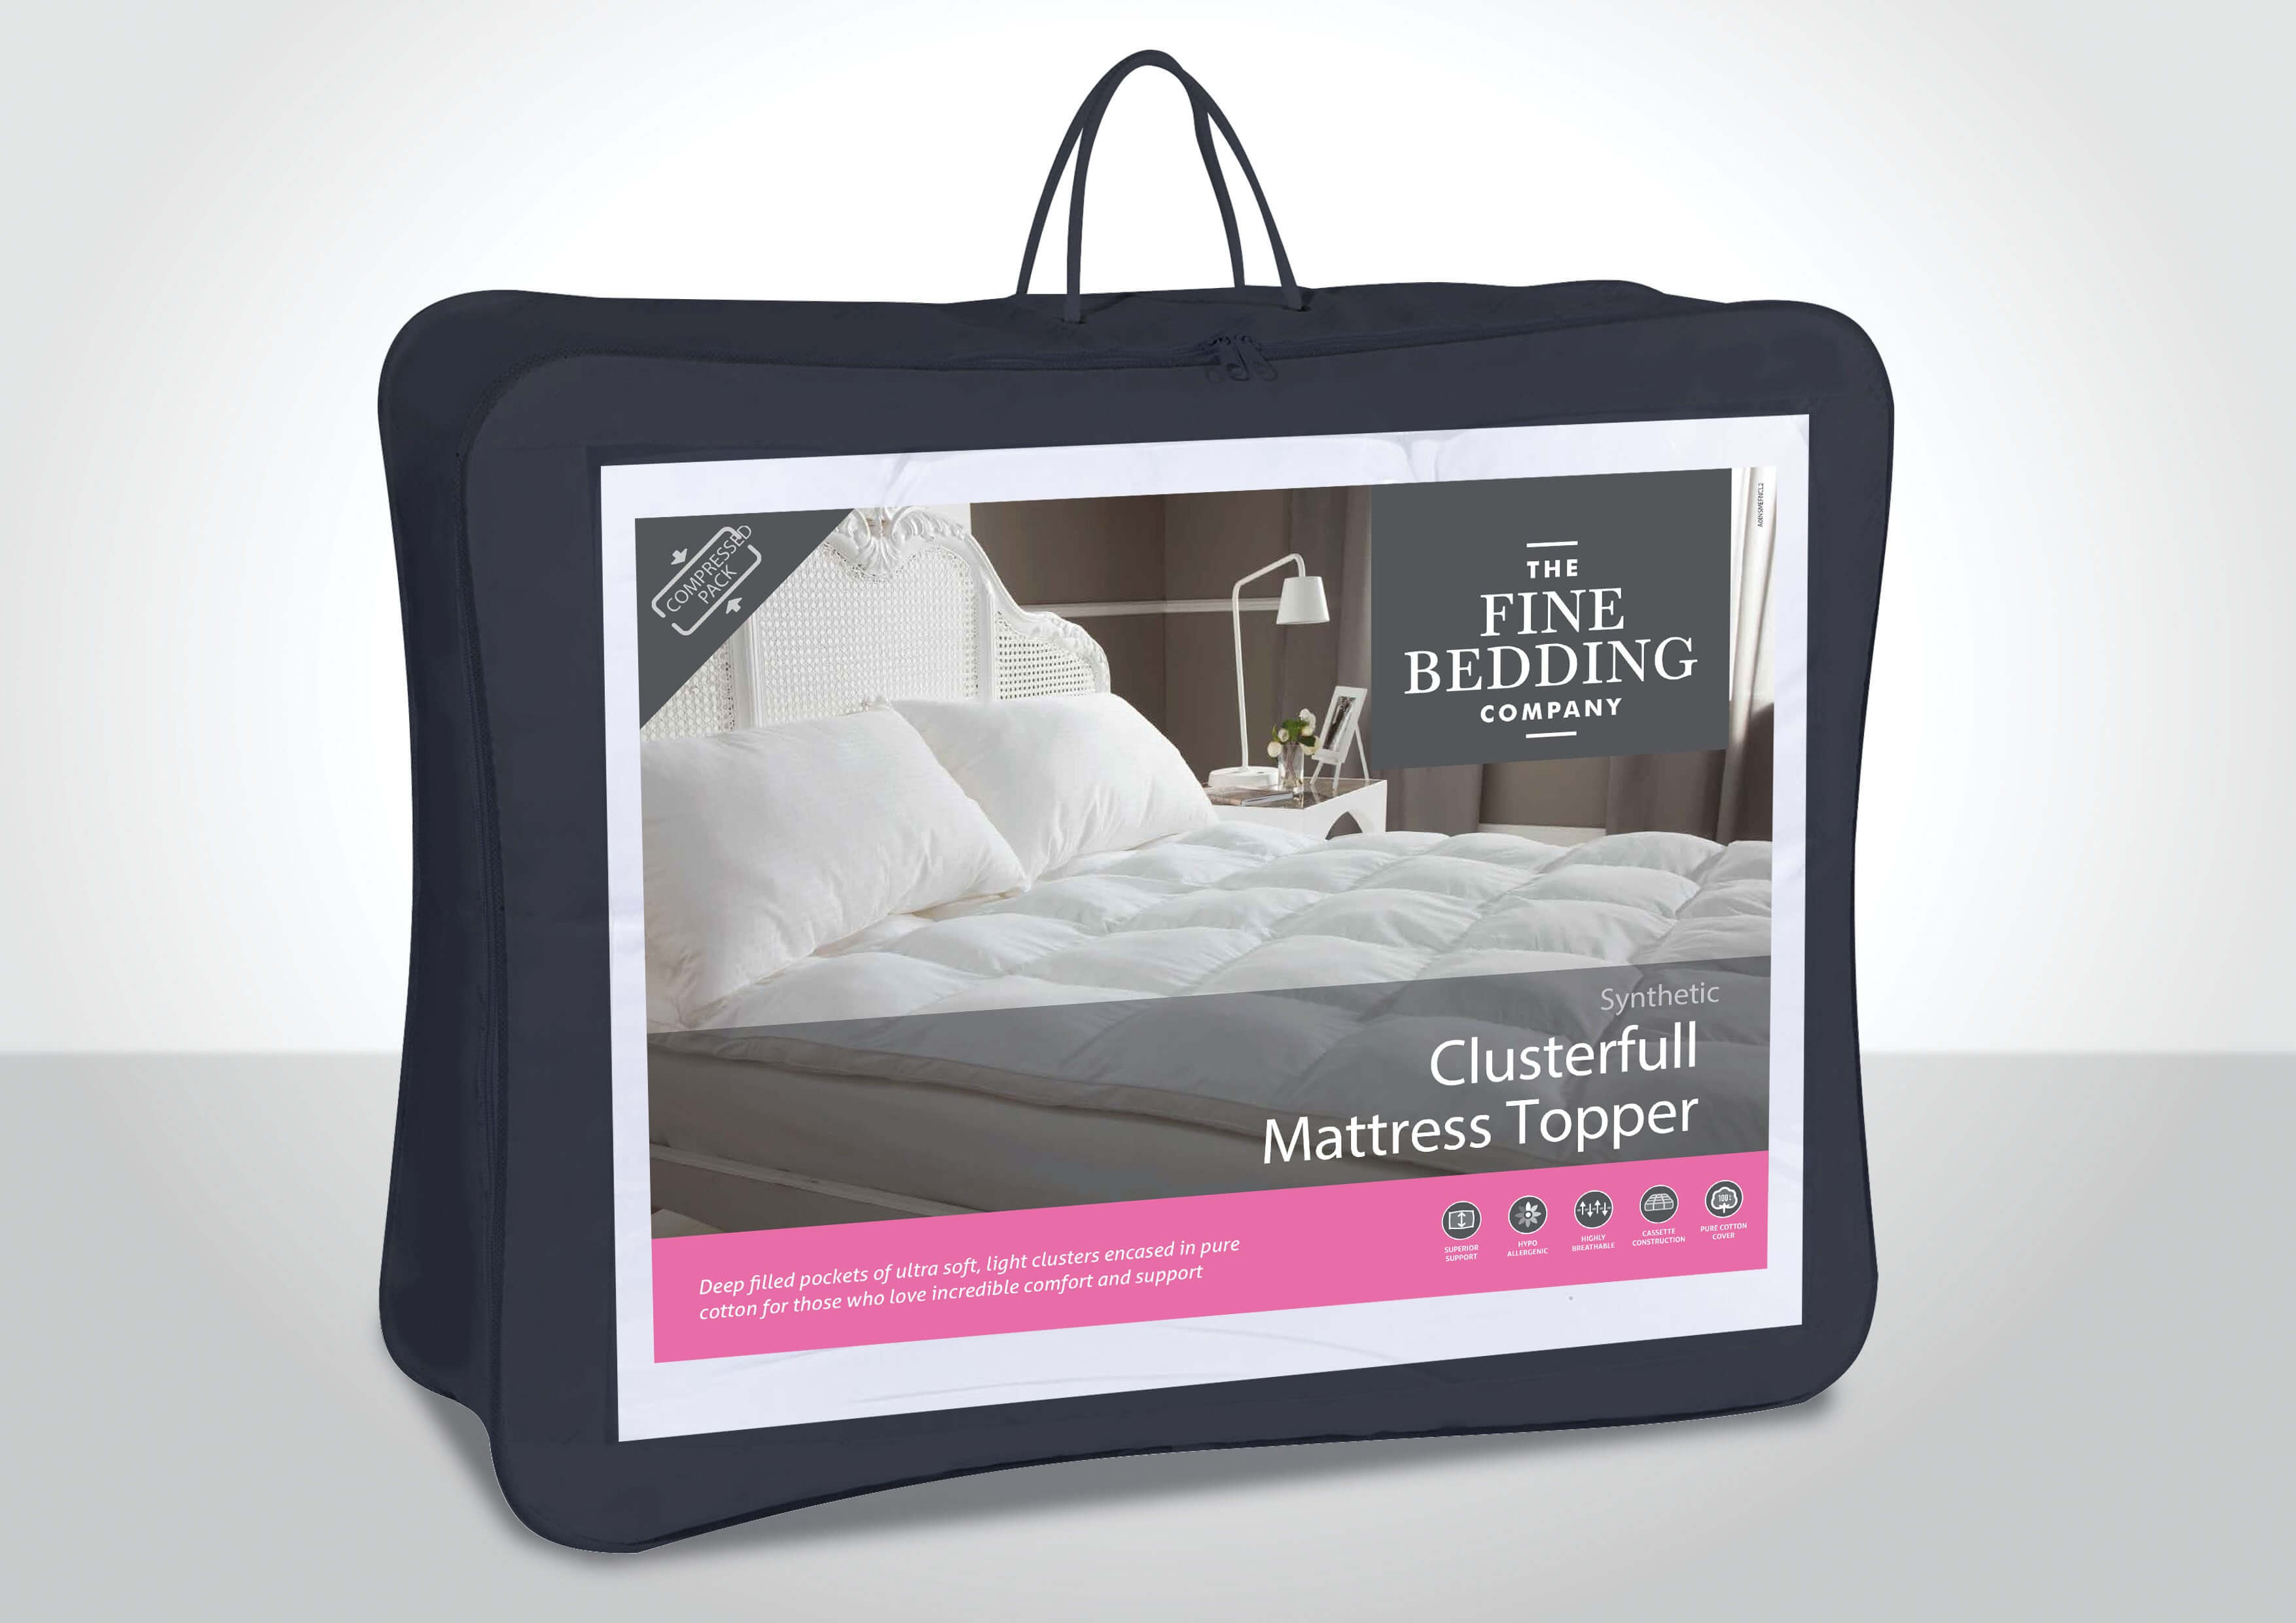 Clusterfull Mattress Topper - The Fine Bedding Company